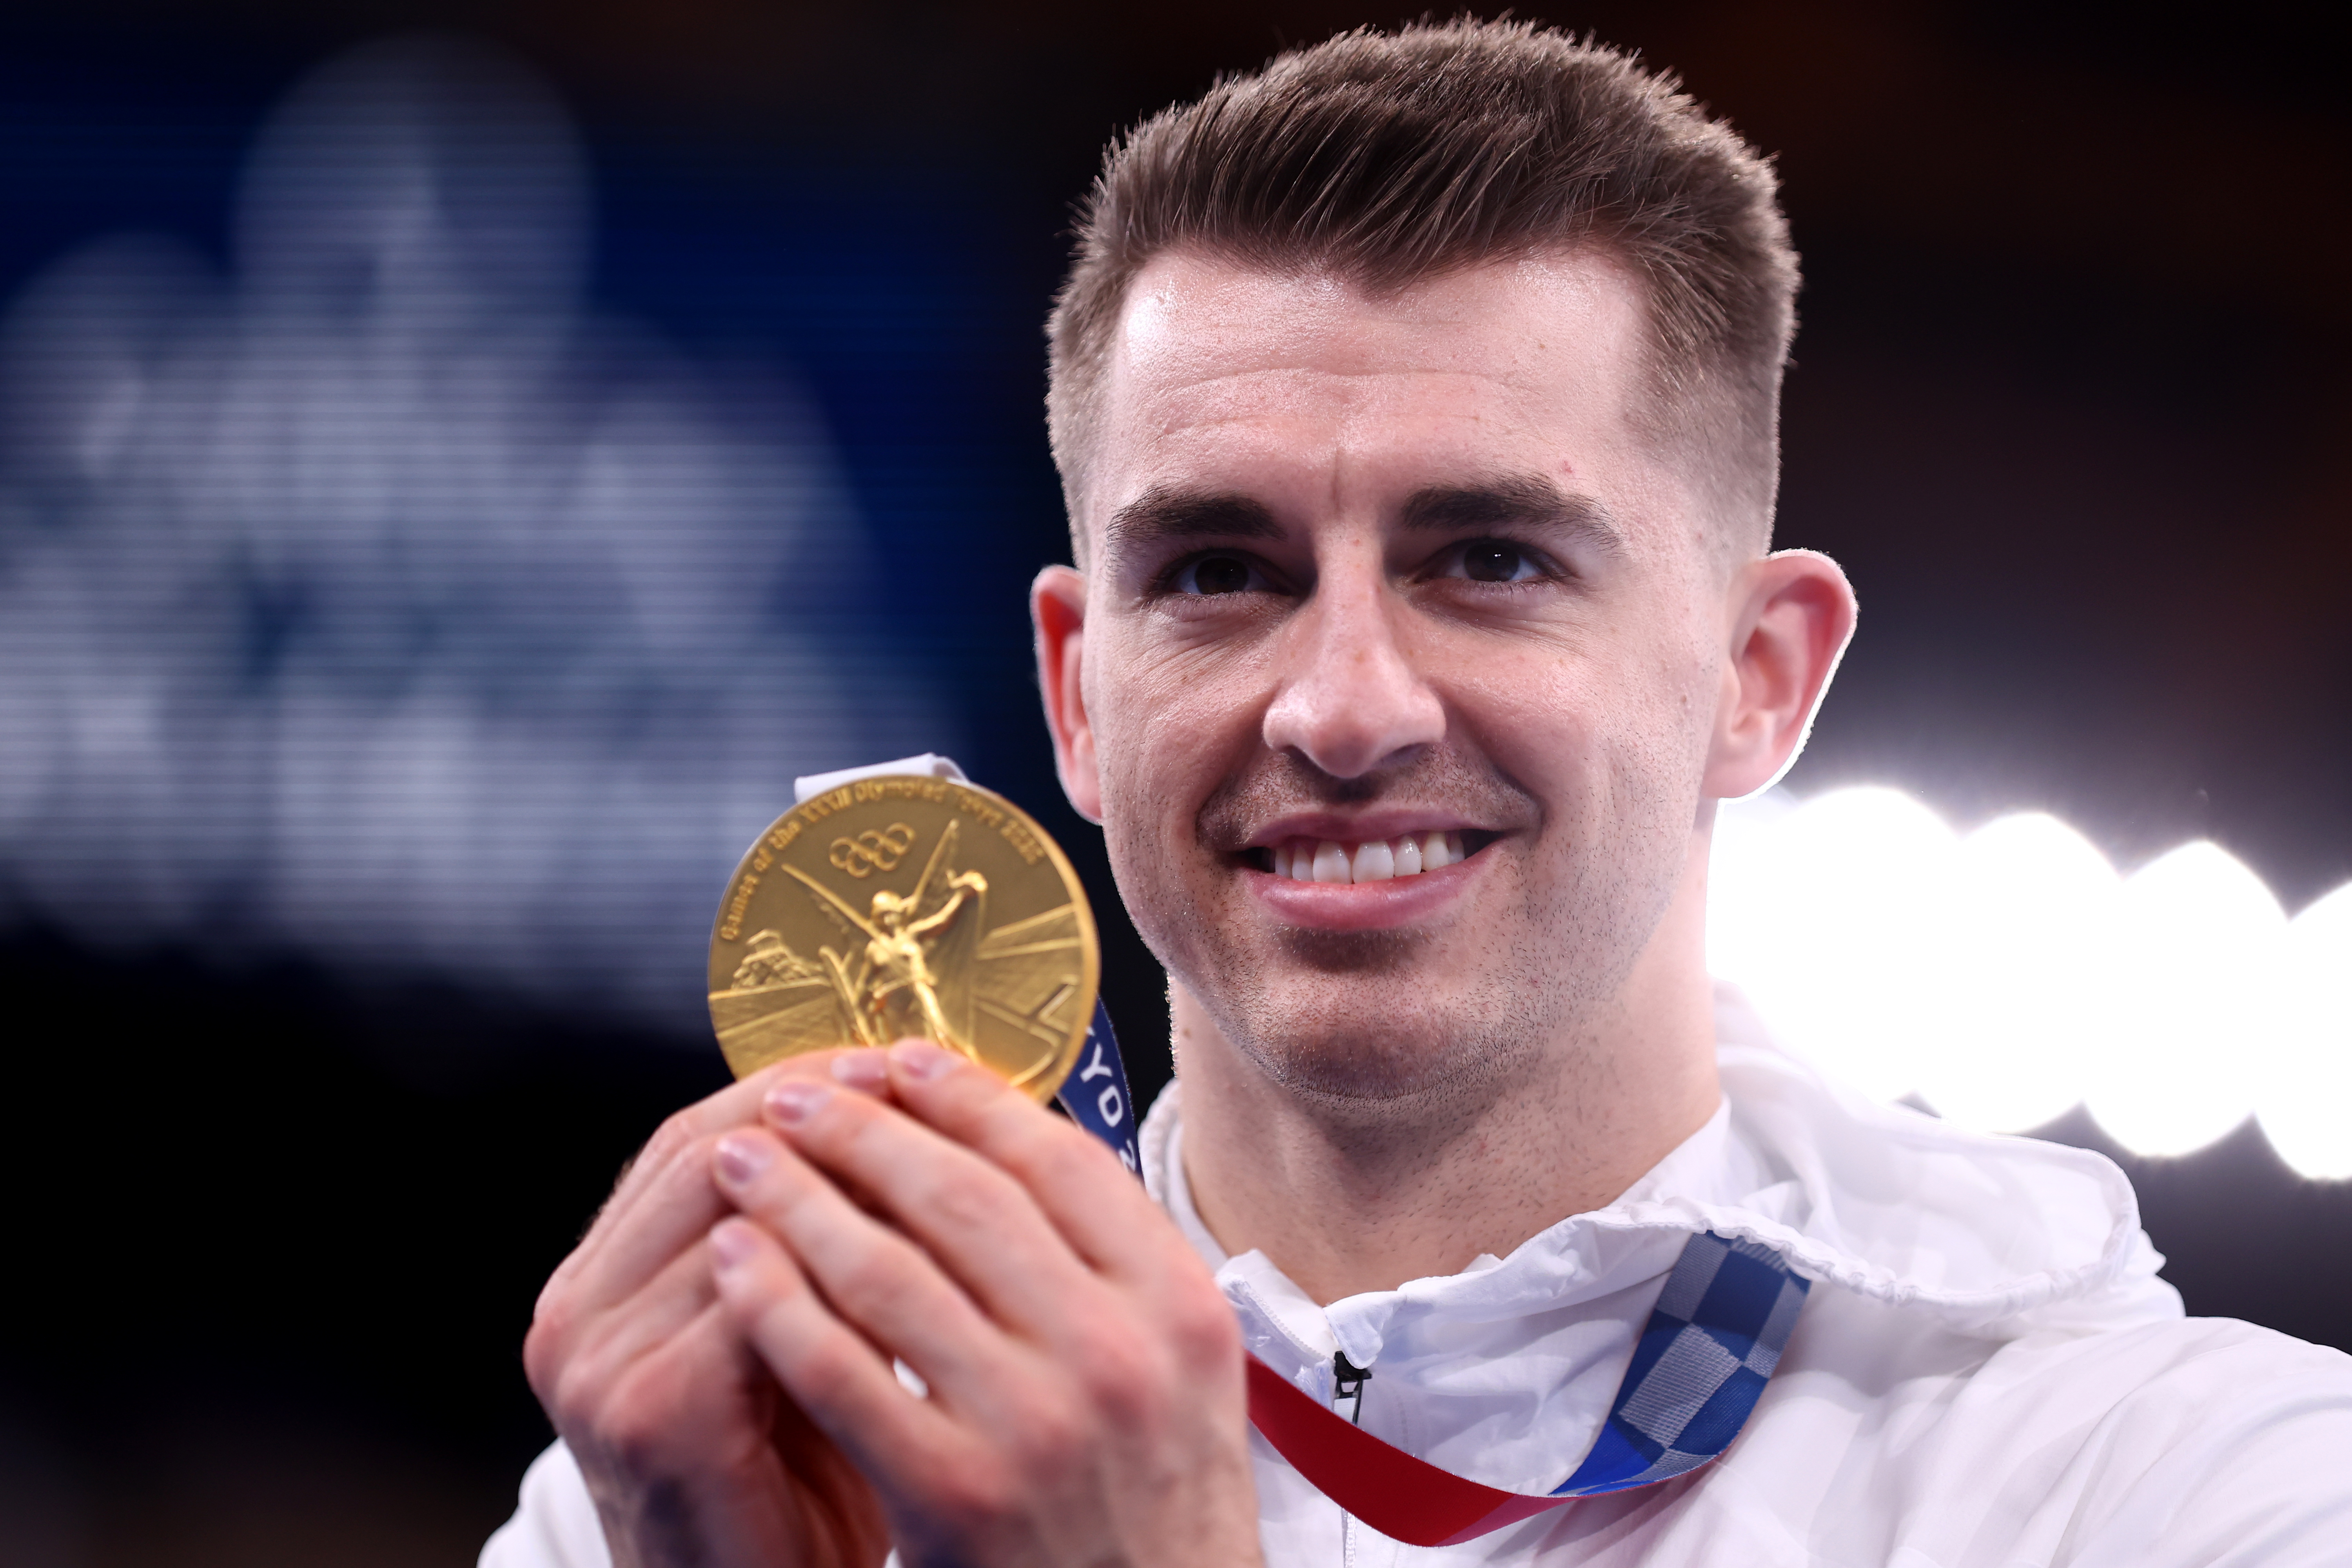 Tokyo 2020 Olympics - Gymnastics - Artistic - Men's Pommel Horse - Medal Ceremony - Ariake Gymnastics Centre, Tokyo, Japan - August 1, 2021. Gold medallist Max Whitlock of Britain poses with his medal REUTERS/Mike Blake